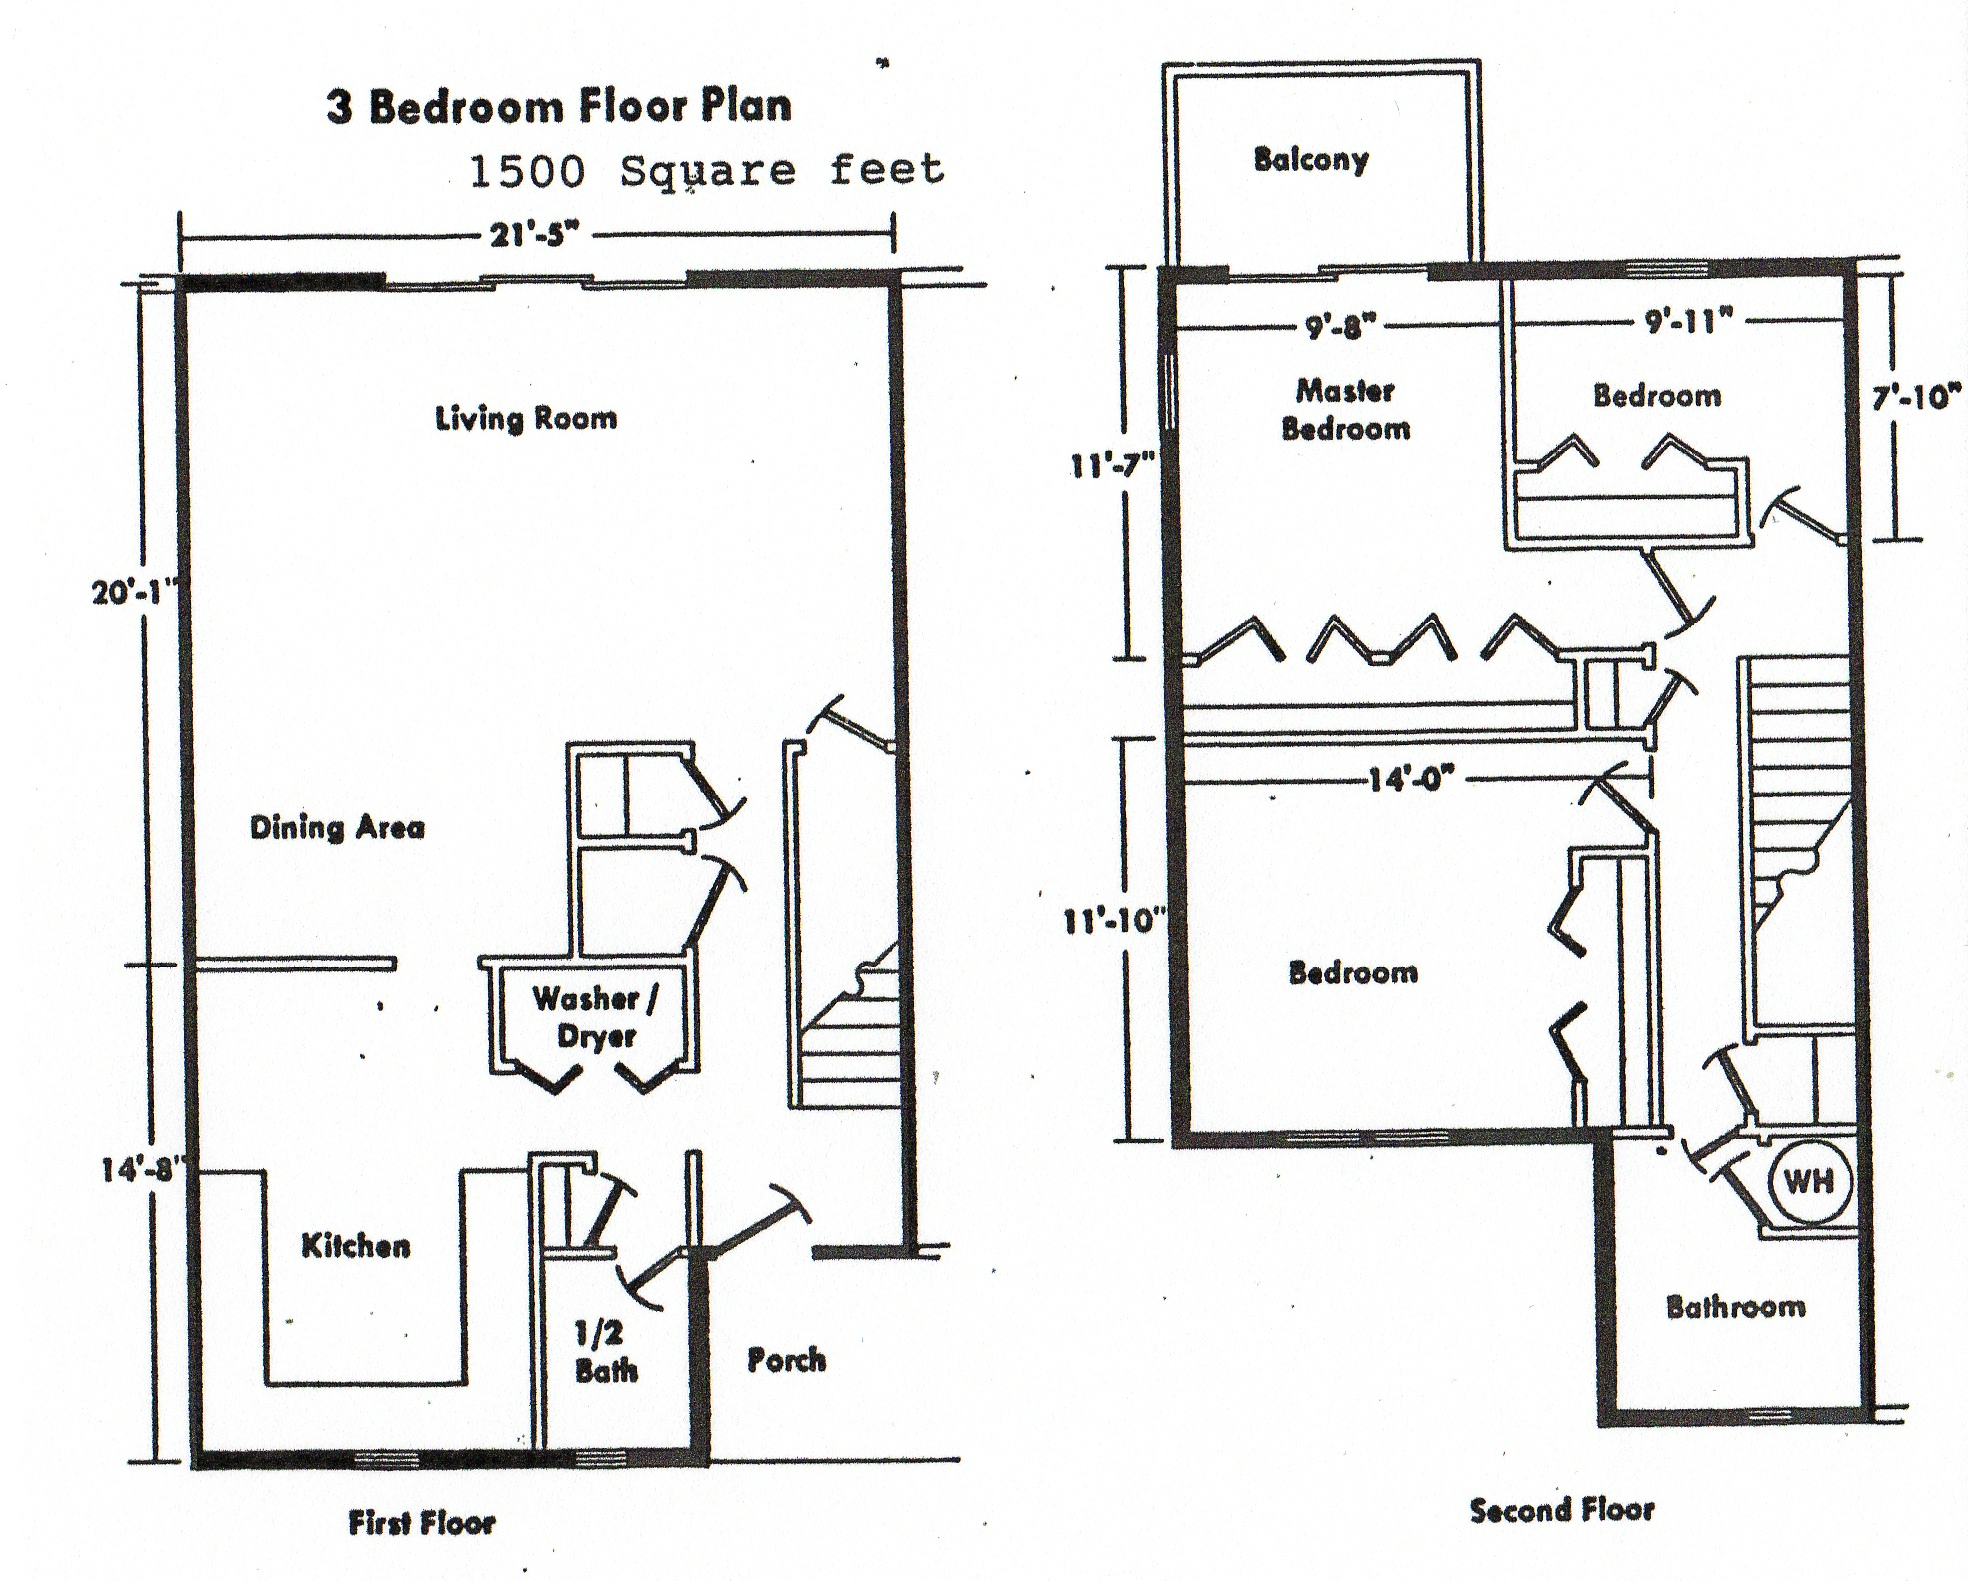 10 Bedroom House Floor Plans Designs Mansion Bedrooms Two